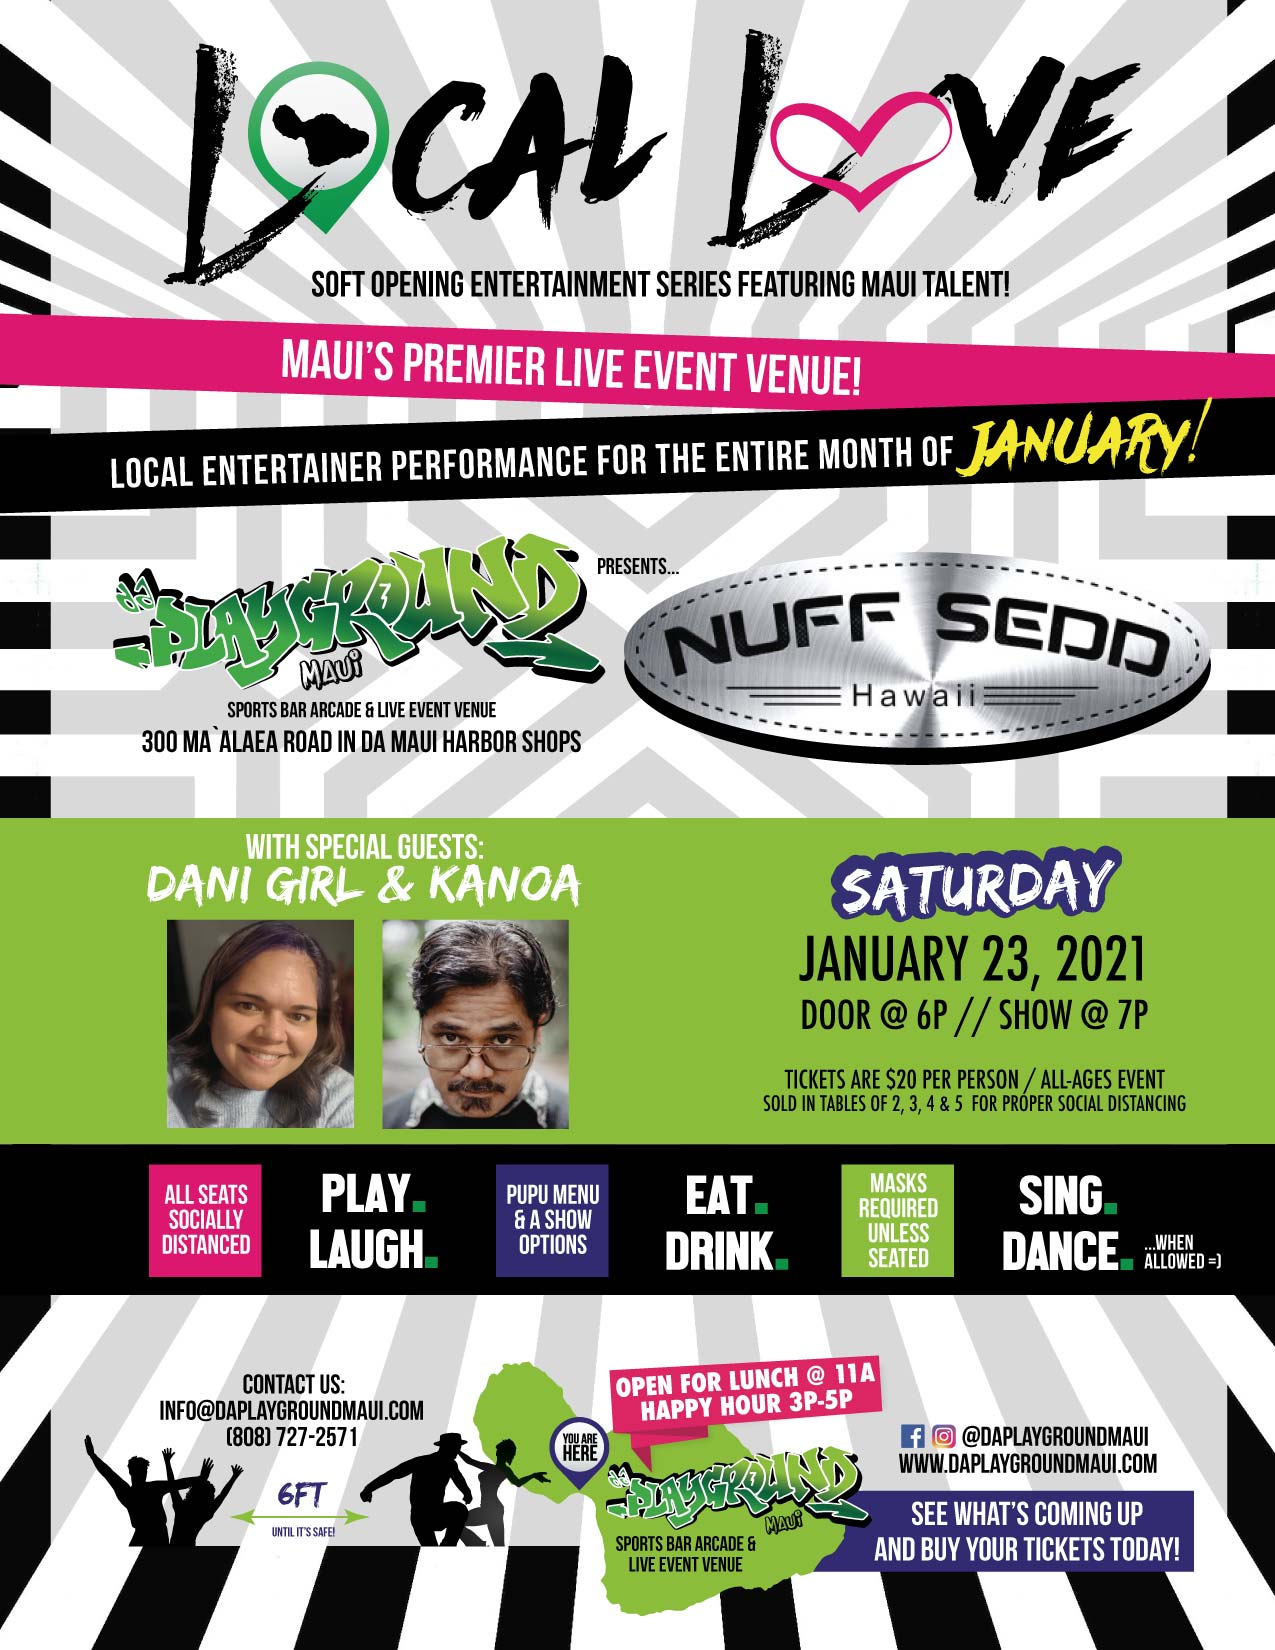 Nuff Sedd with special guests Dani Girl and Kanoa at da Playground Maui